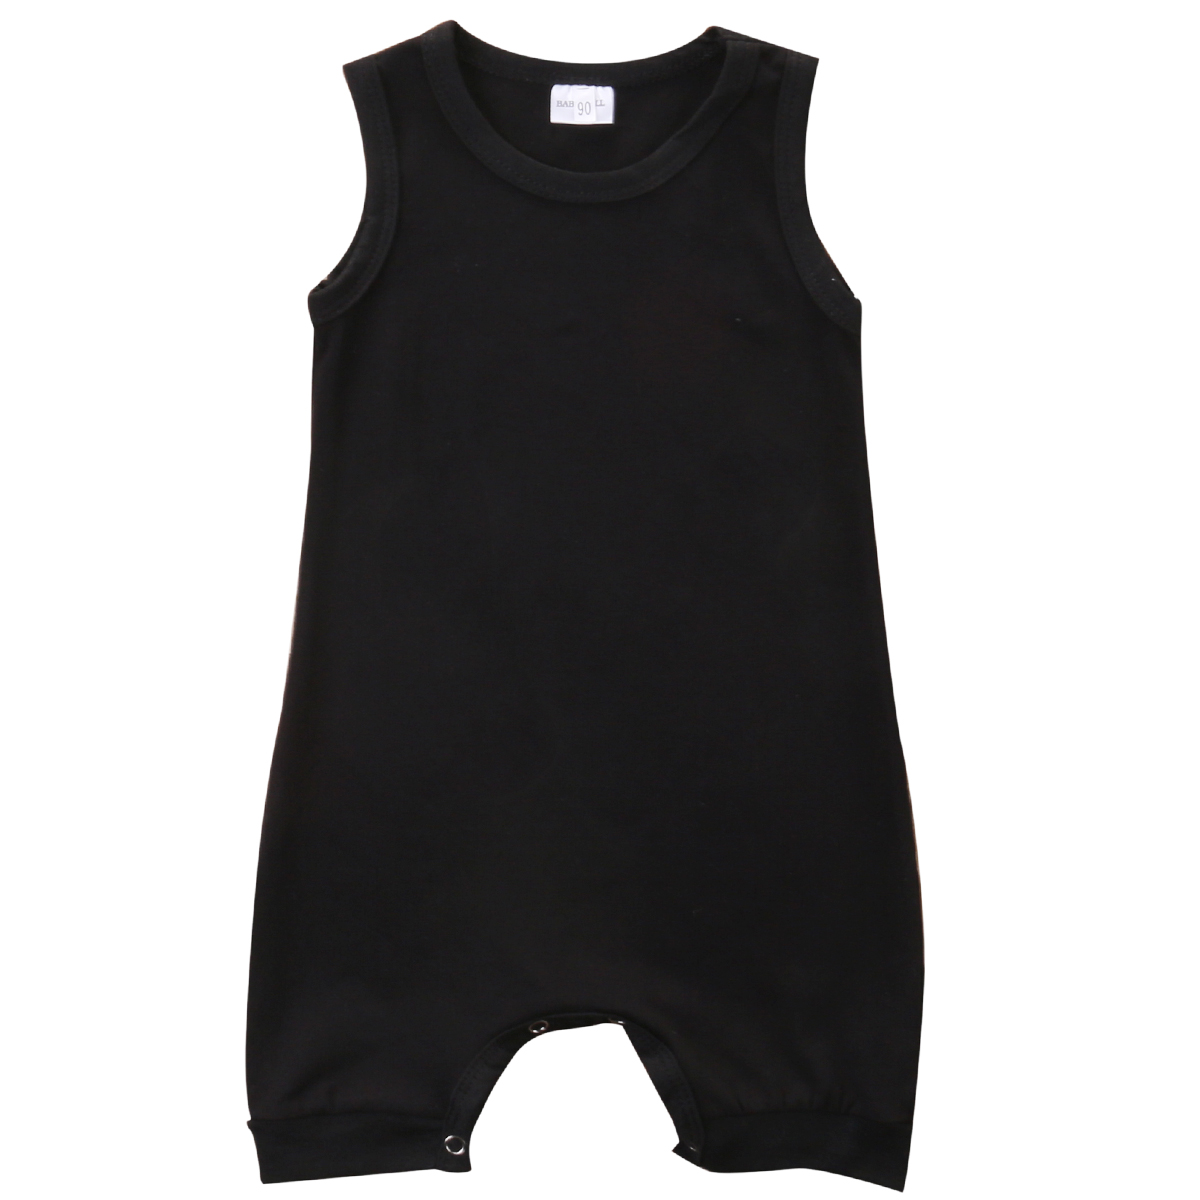 Cute Black Jumpsuits Outfits Clothing Baby Kid Boy Girl Wings Newborn Toddler Child Infant Kids Boys Girls Clothes Romper 0-18M infant toddler baby boy girl kid soft sole shoes laces up sneaker newborn 0 18m first walkers baby shoes